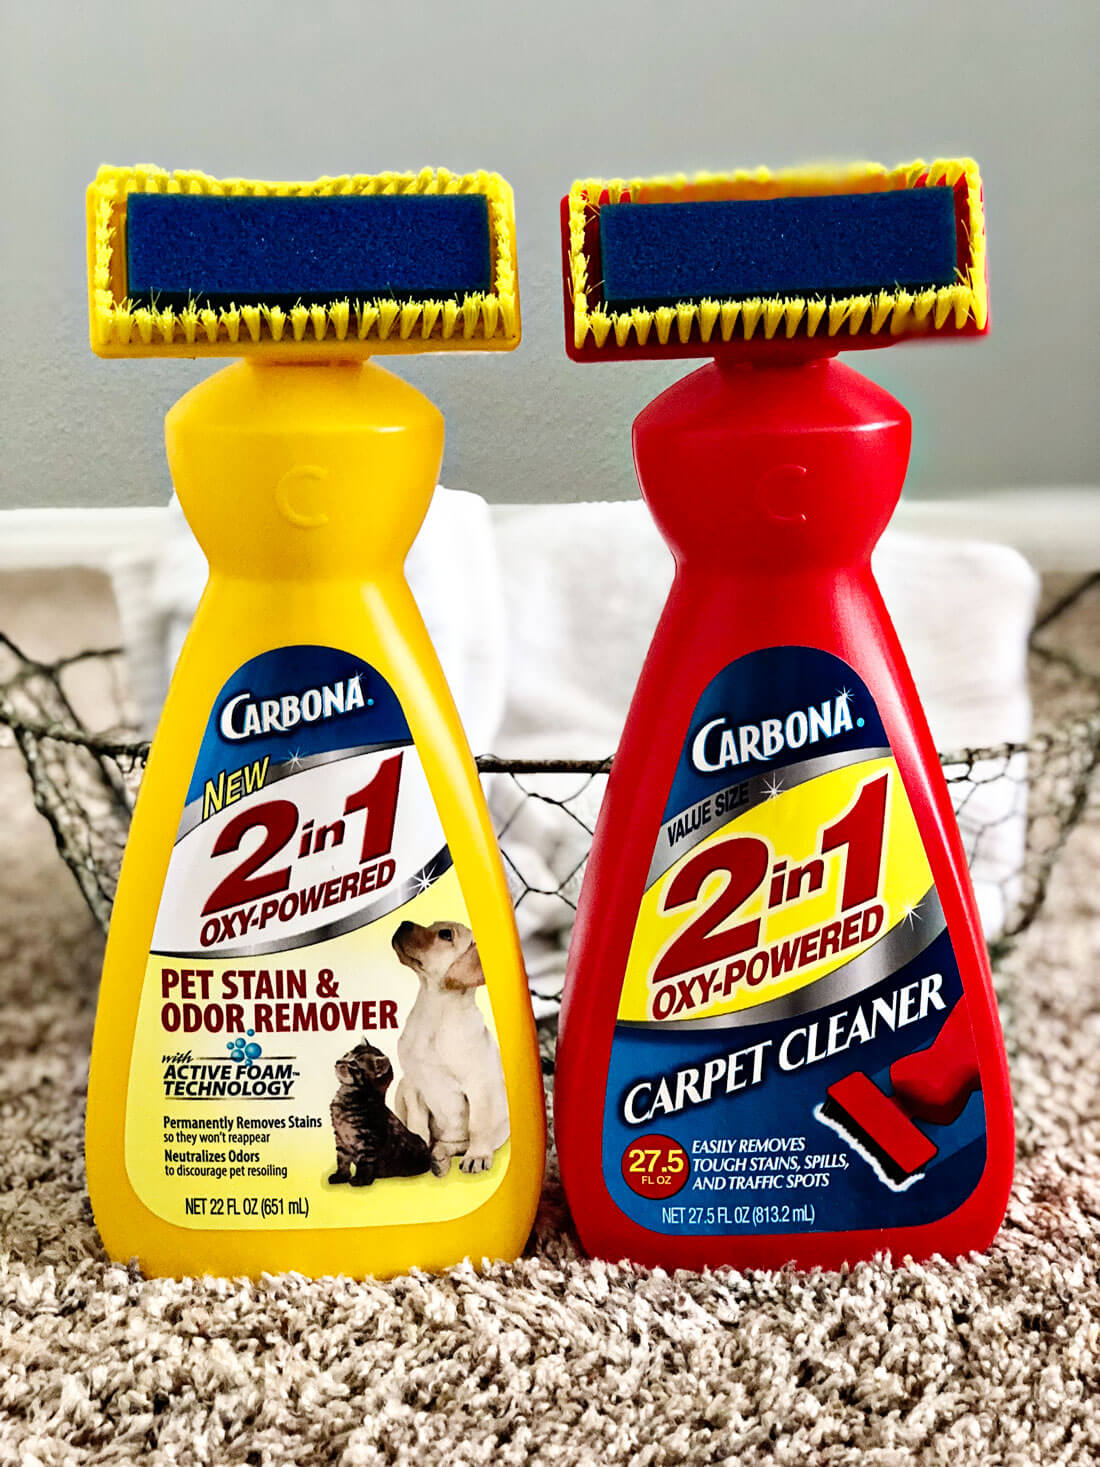 Try Carbona to get those pesky carpet stains out